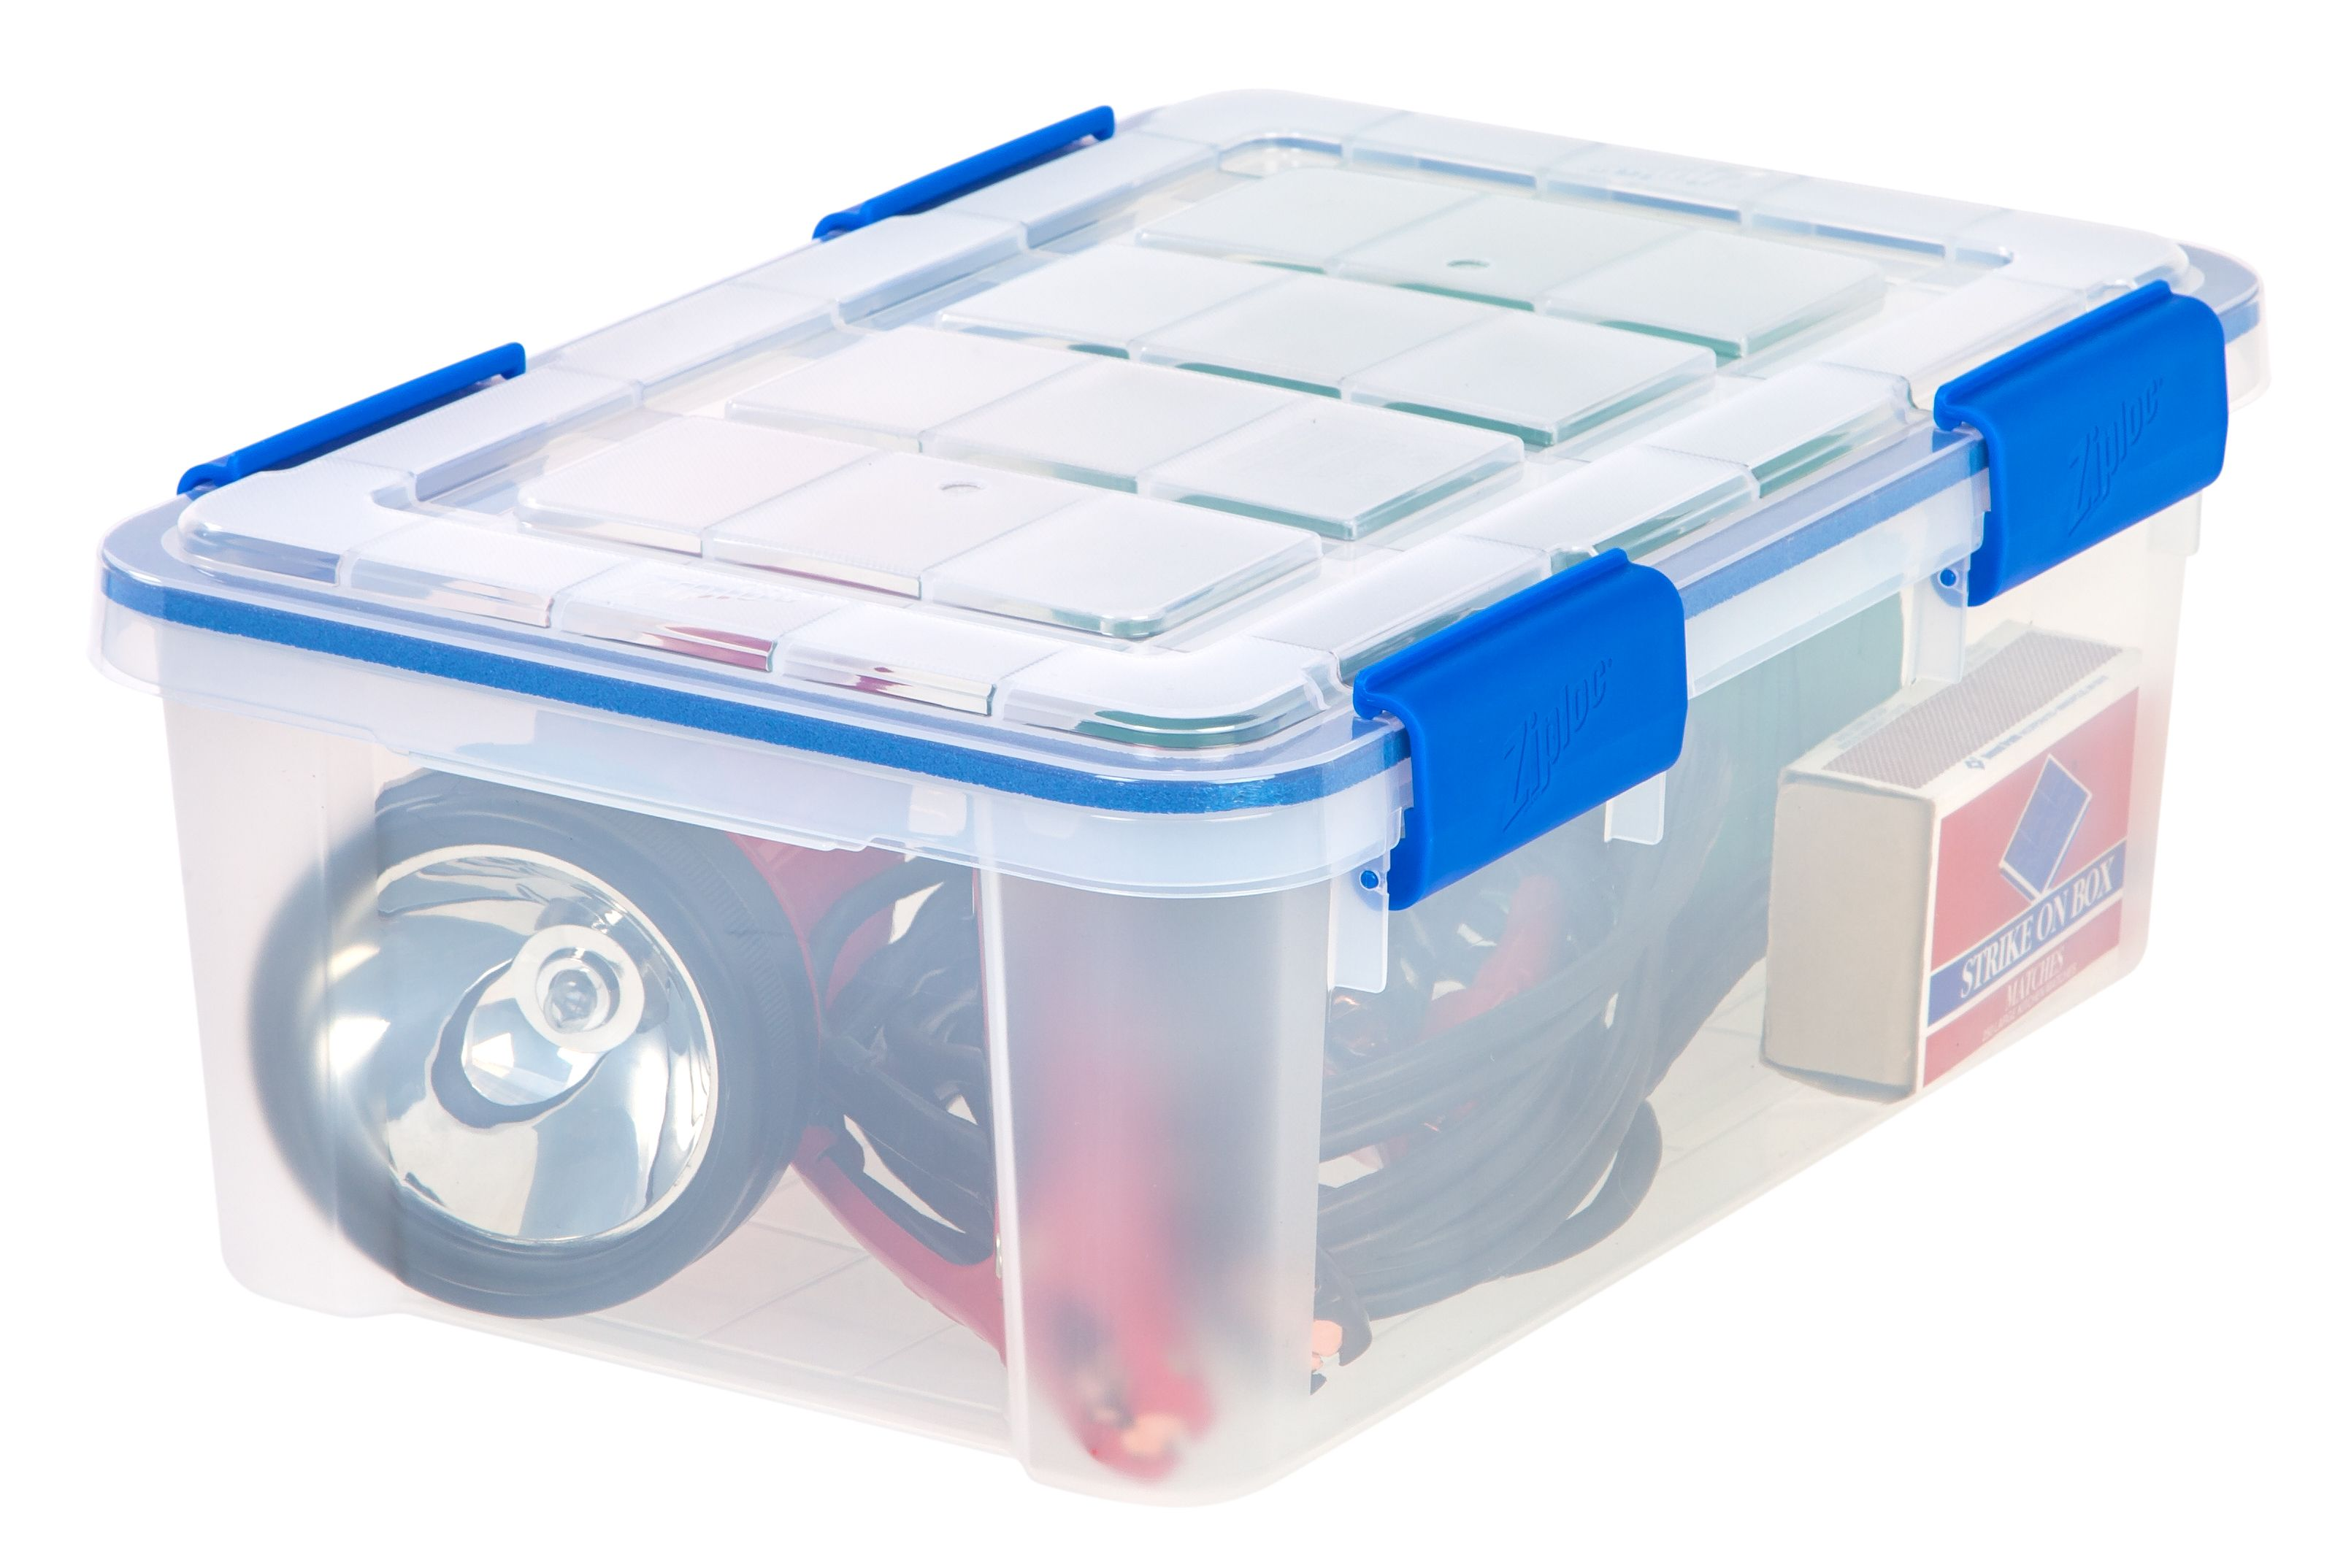 Free 2 Day Shipping On Qualified Orders Over 35 Buy Ziploc 16 Quart 4 Gallon Weathershield Storage Box Clear At Walmart Storage Box Weathershield Storage